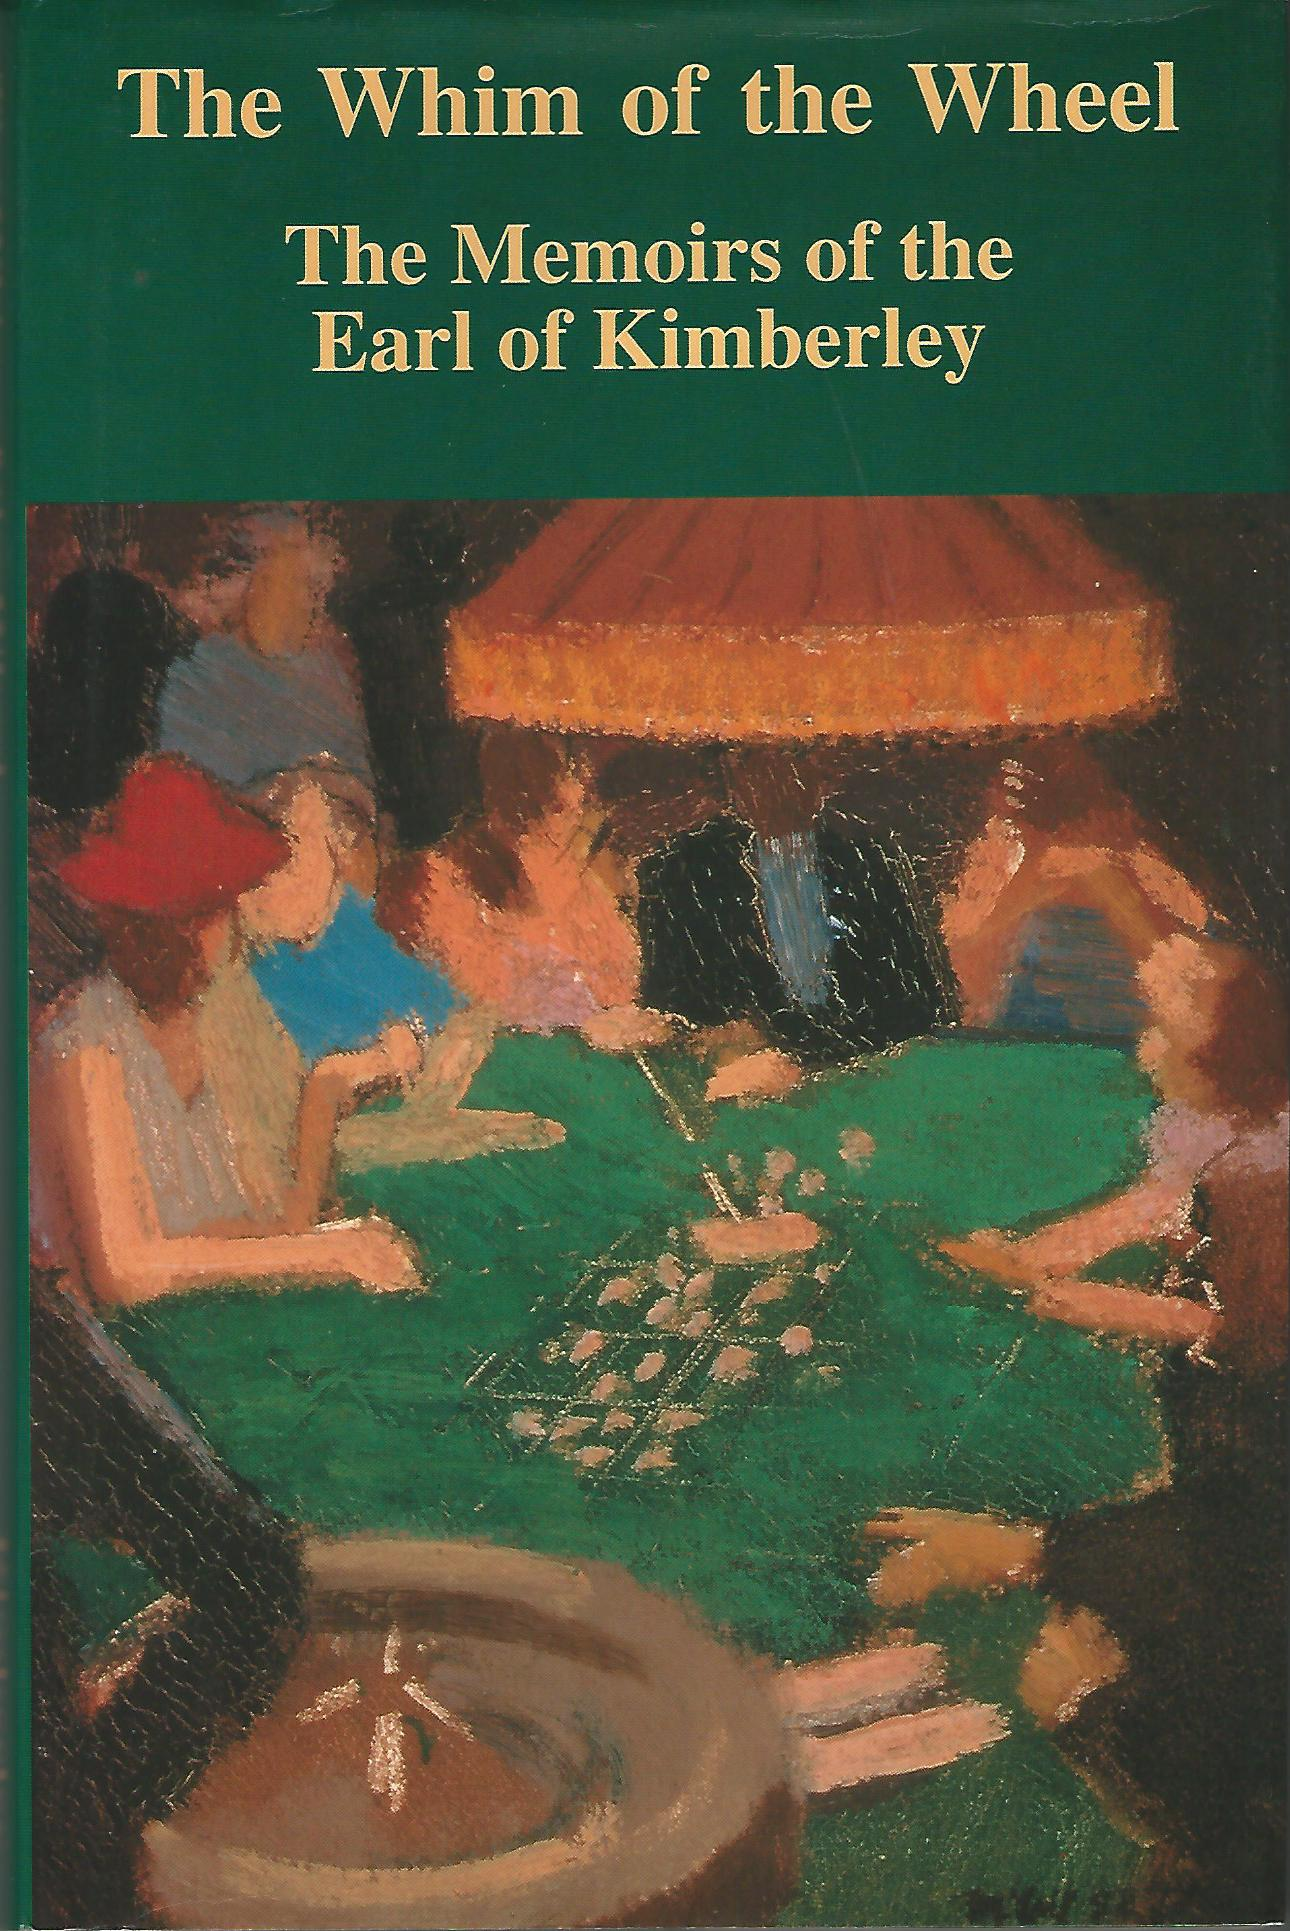 Image for The Whim of the Wheel: The Memoirs of the Earl of Kimberly.